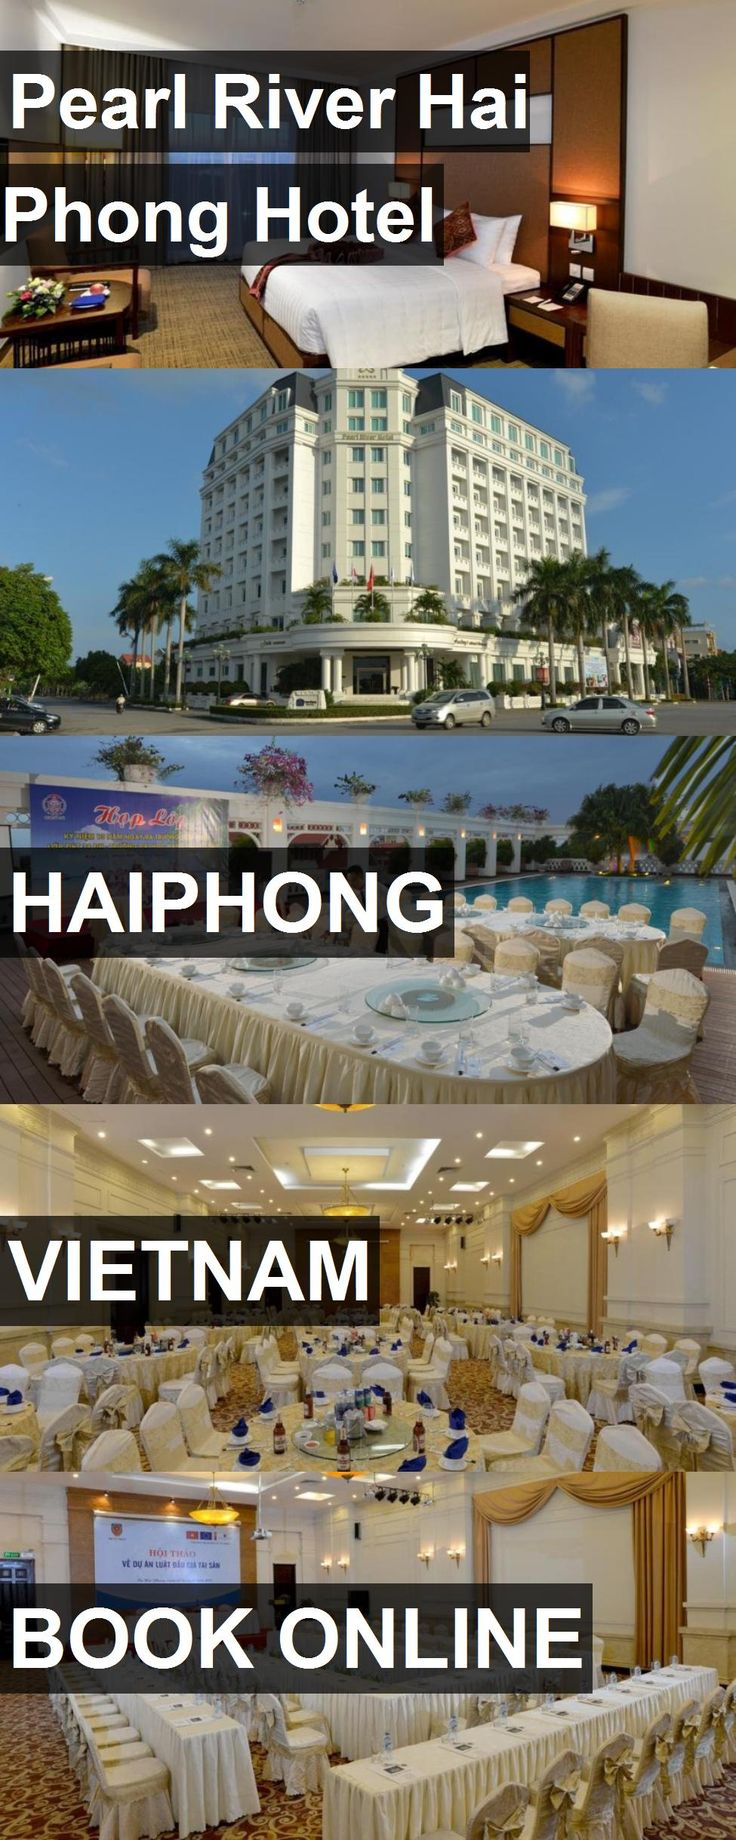 Pearl River Hai Phong Hotel in Haiphong, Vietnam. For more information, photos, reviews and best prices please follow the link. #Vietnam #Haiphong #travel #vacation #hotel